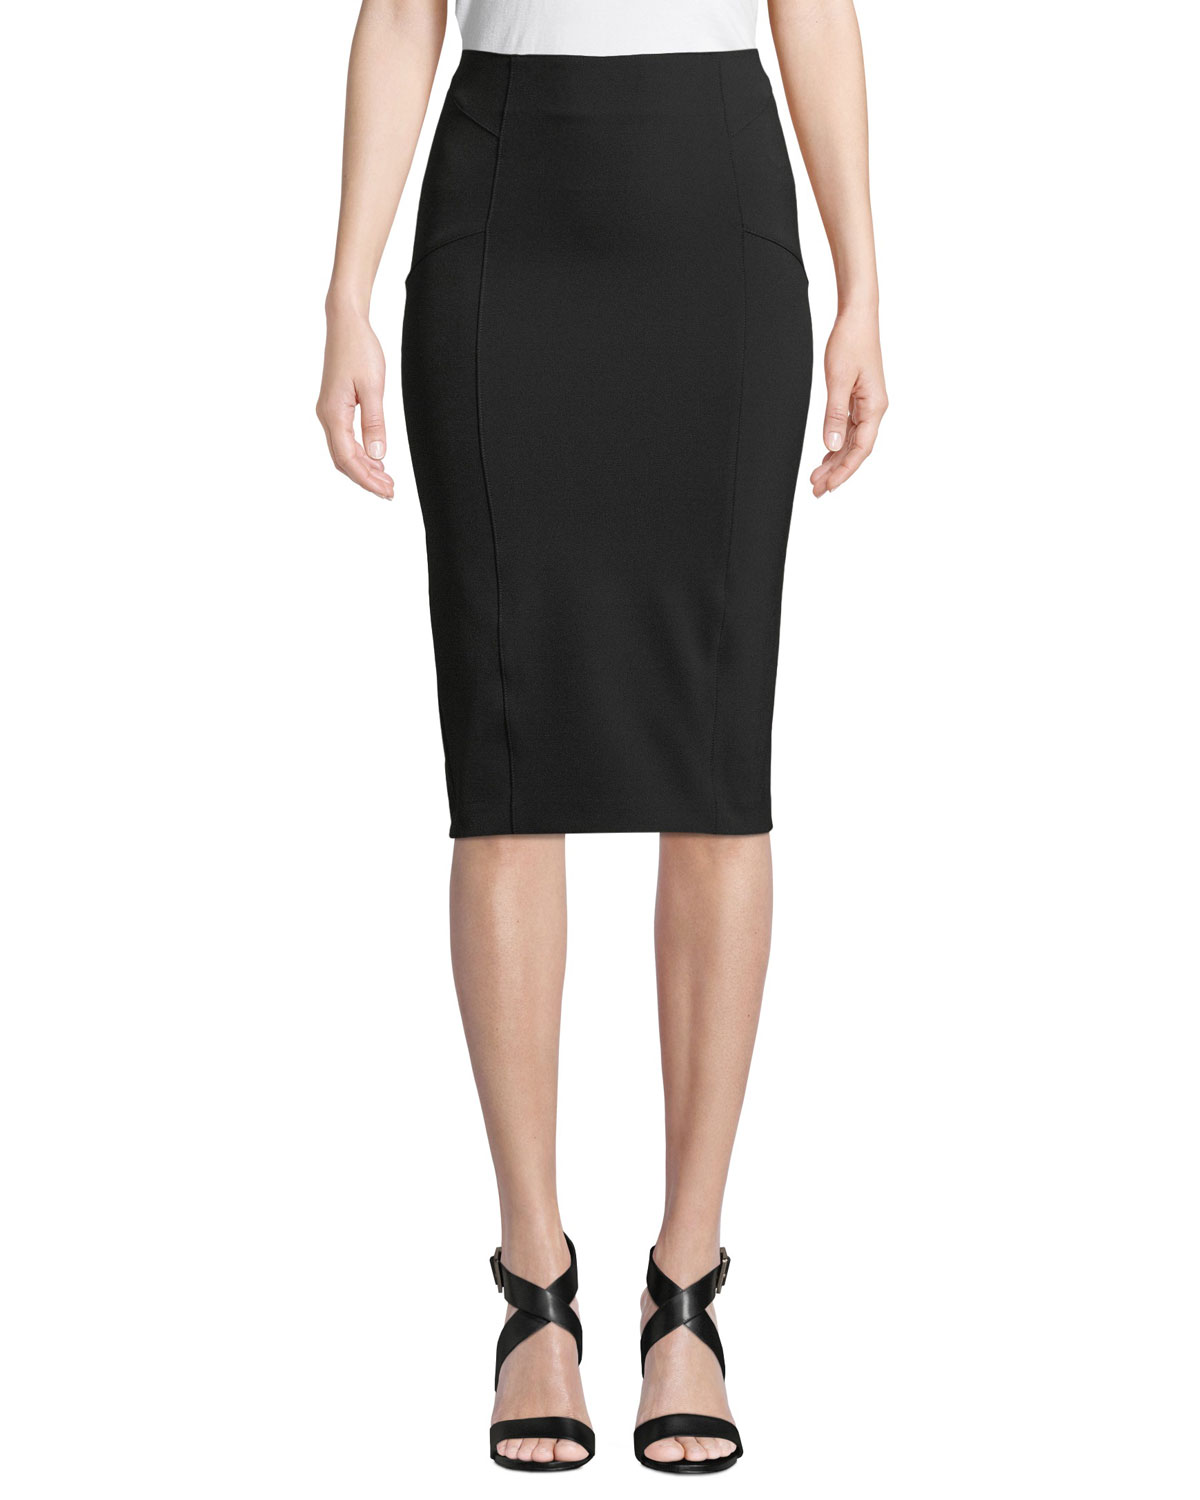 Scuba-Knit Pencil Skirt With Exposed Zip in Black